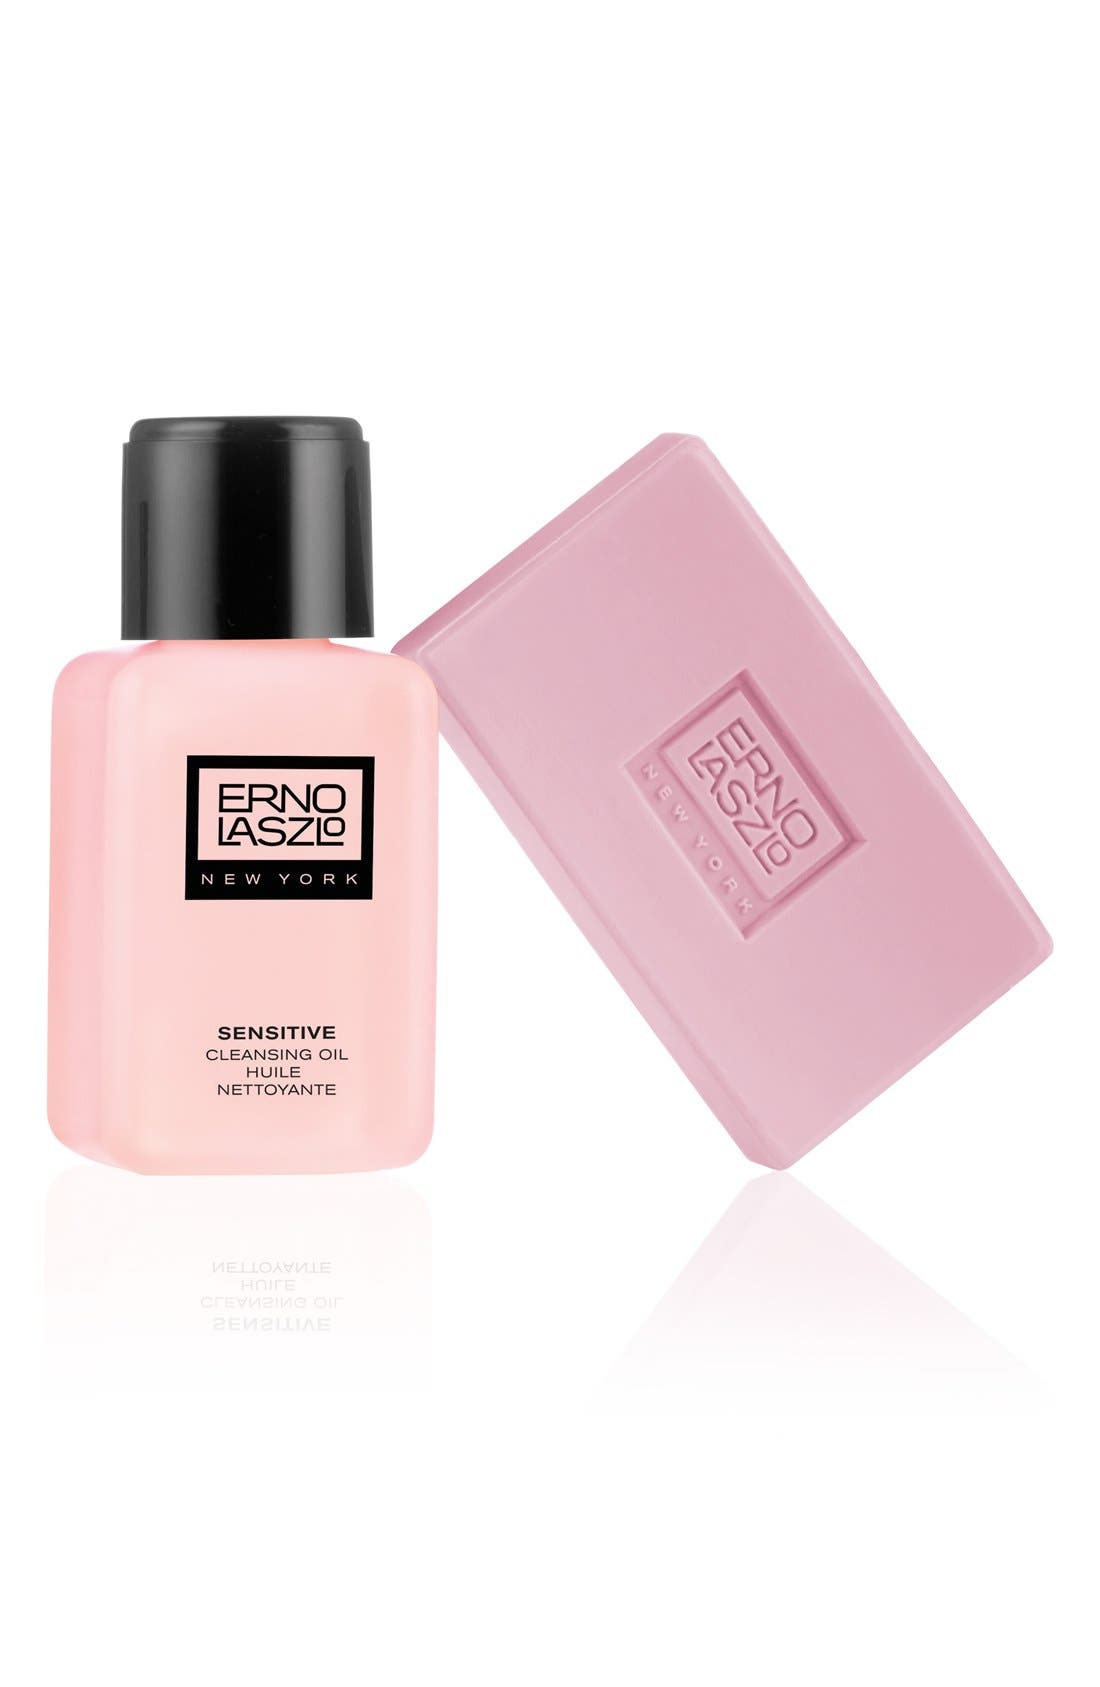 Erno Laszlo Sensitive Skin Cleansing Set ($38 Value)